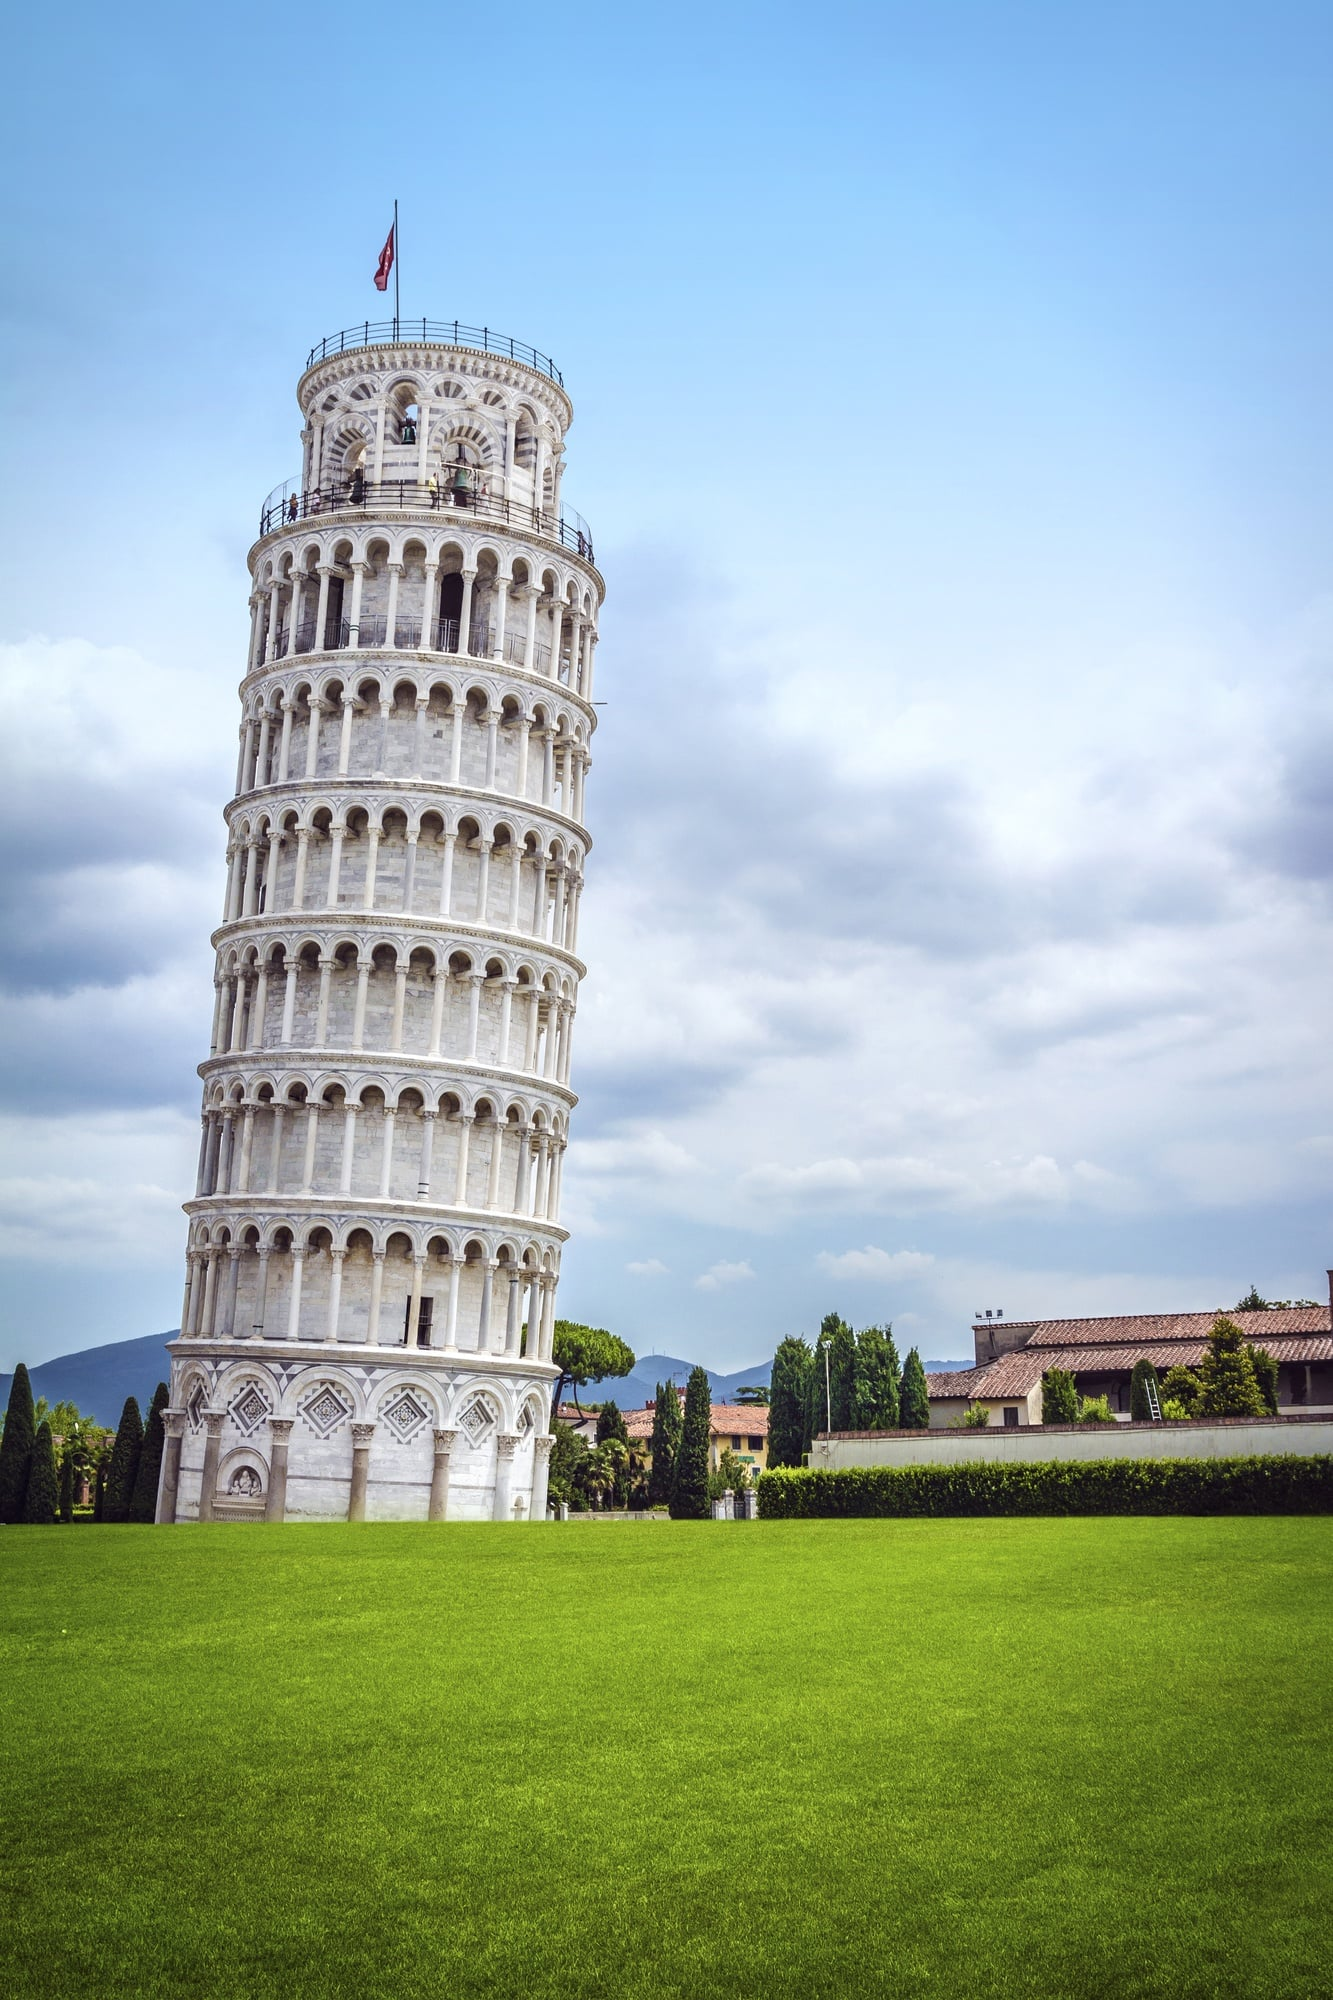 How many steps are there in the Leaning Tower of Pisa